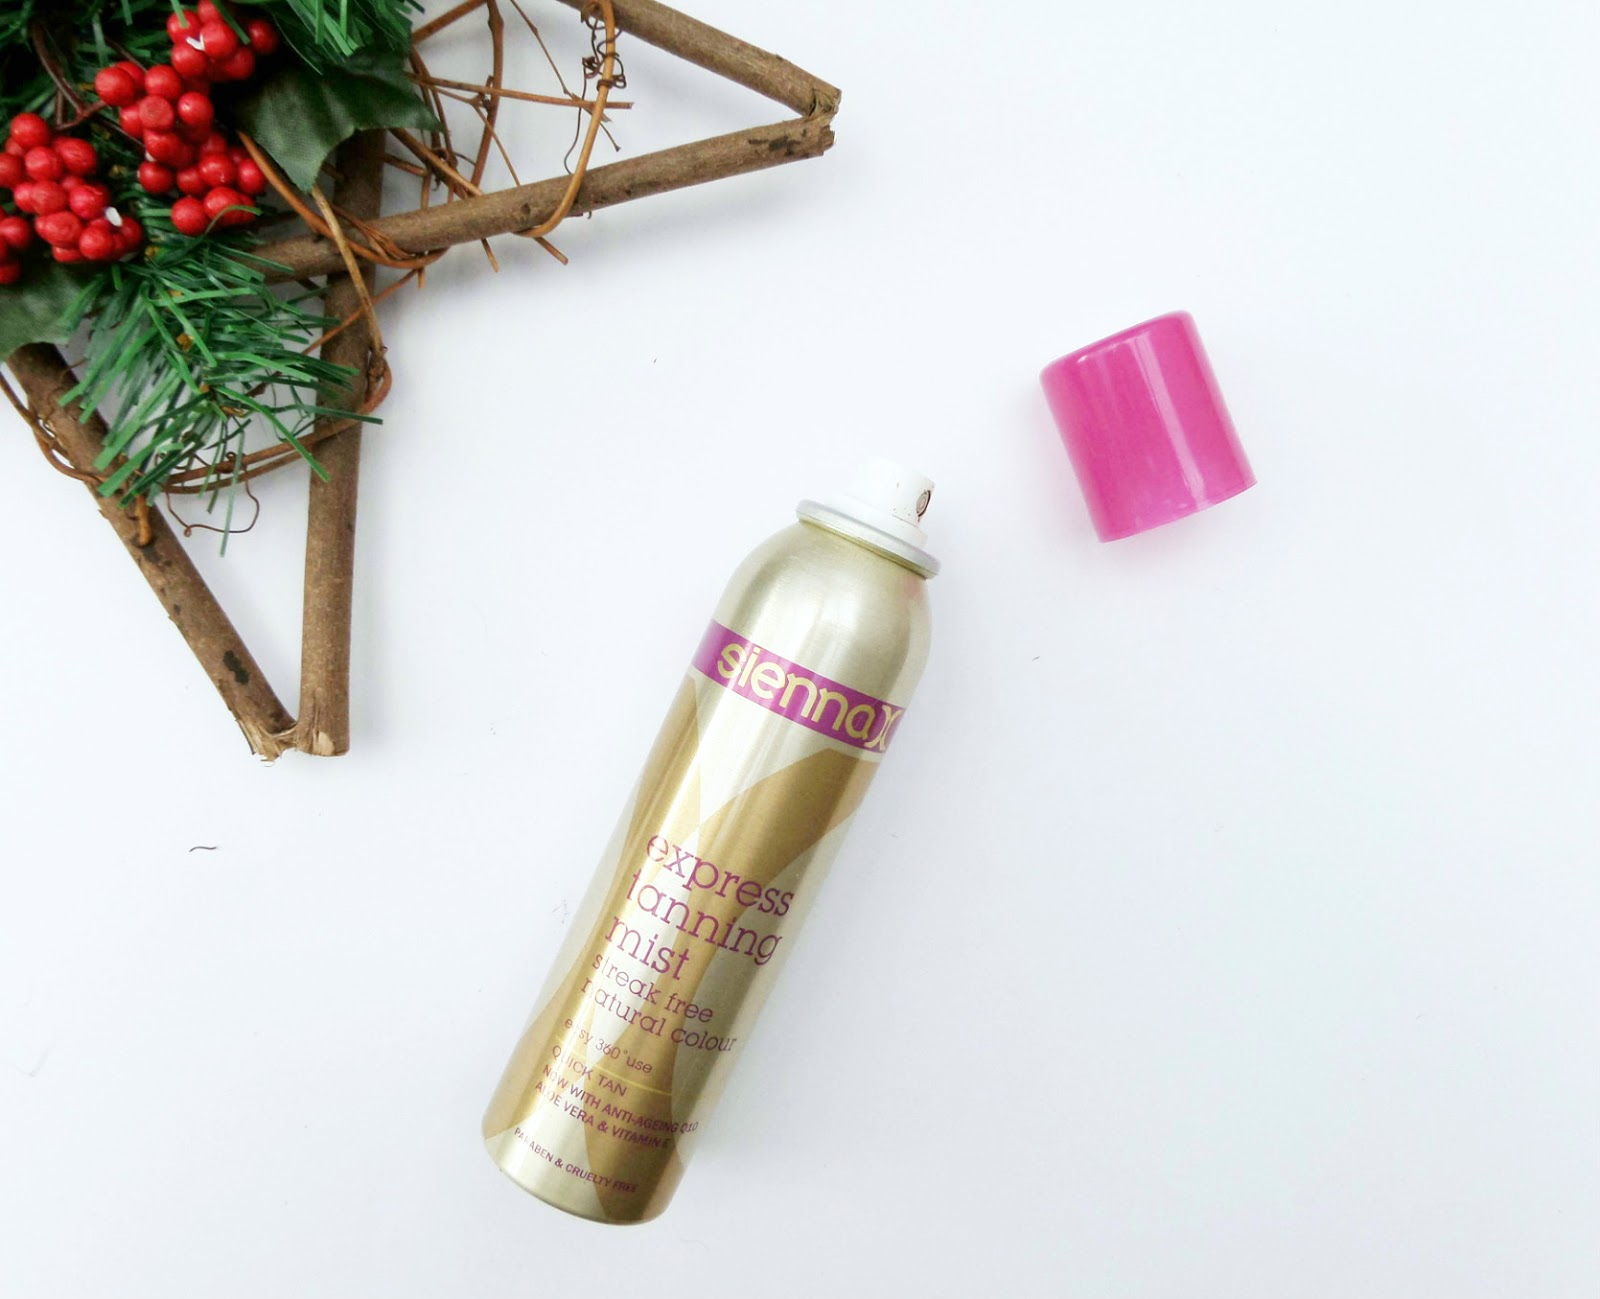 Sienna X Express Tanning Mist Review